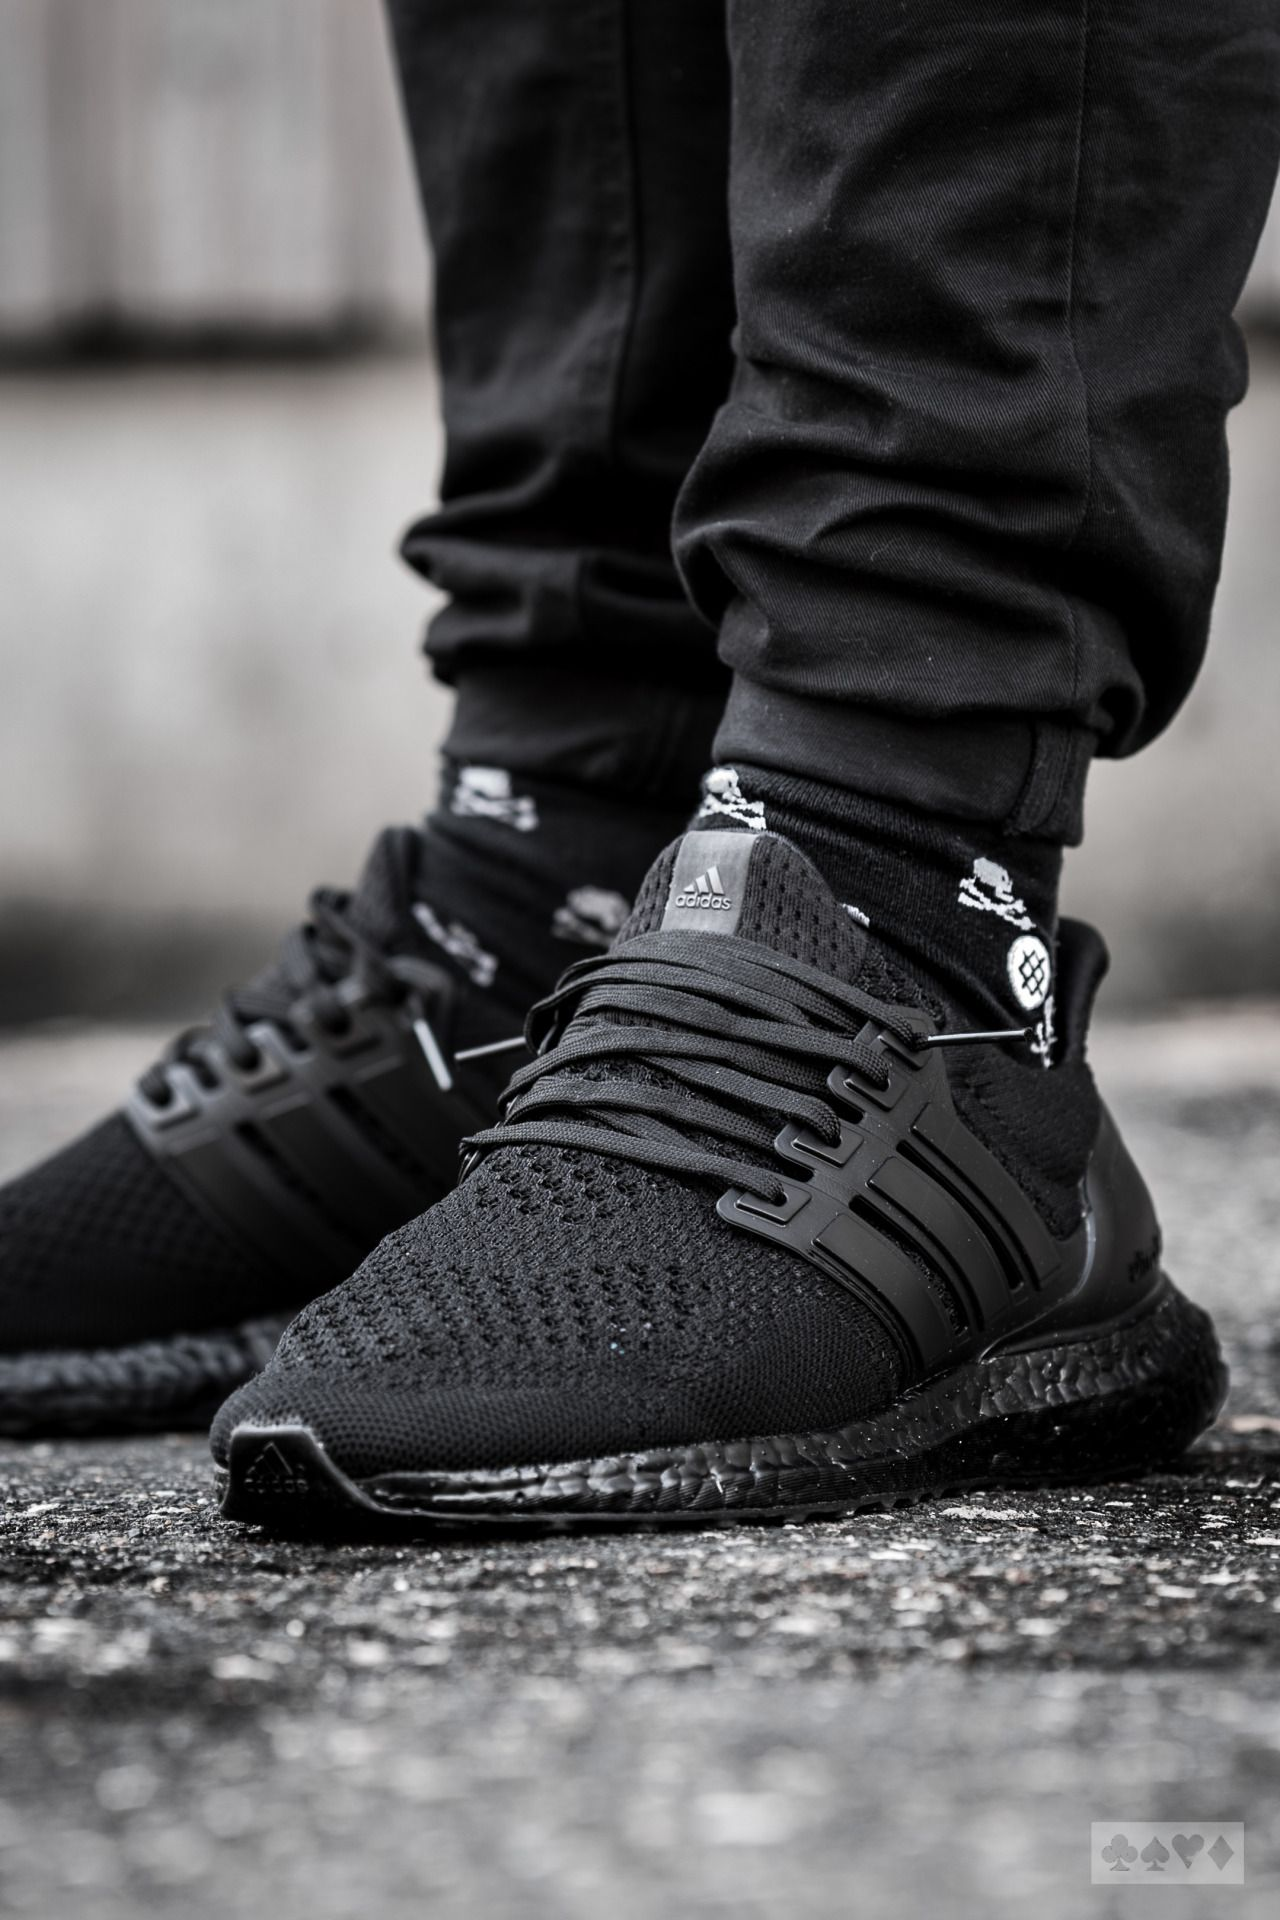 Adidas Ultra Boost Triple Black 2016 | Herrenmode schuhe